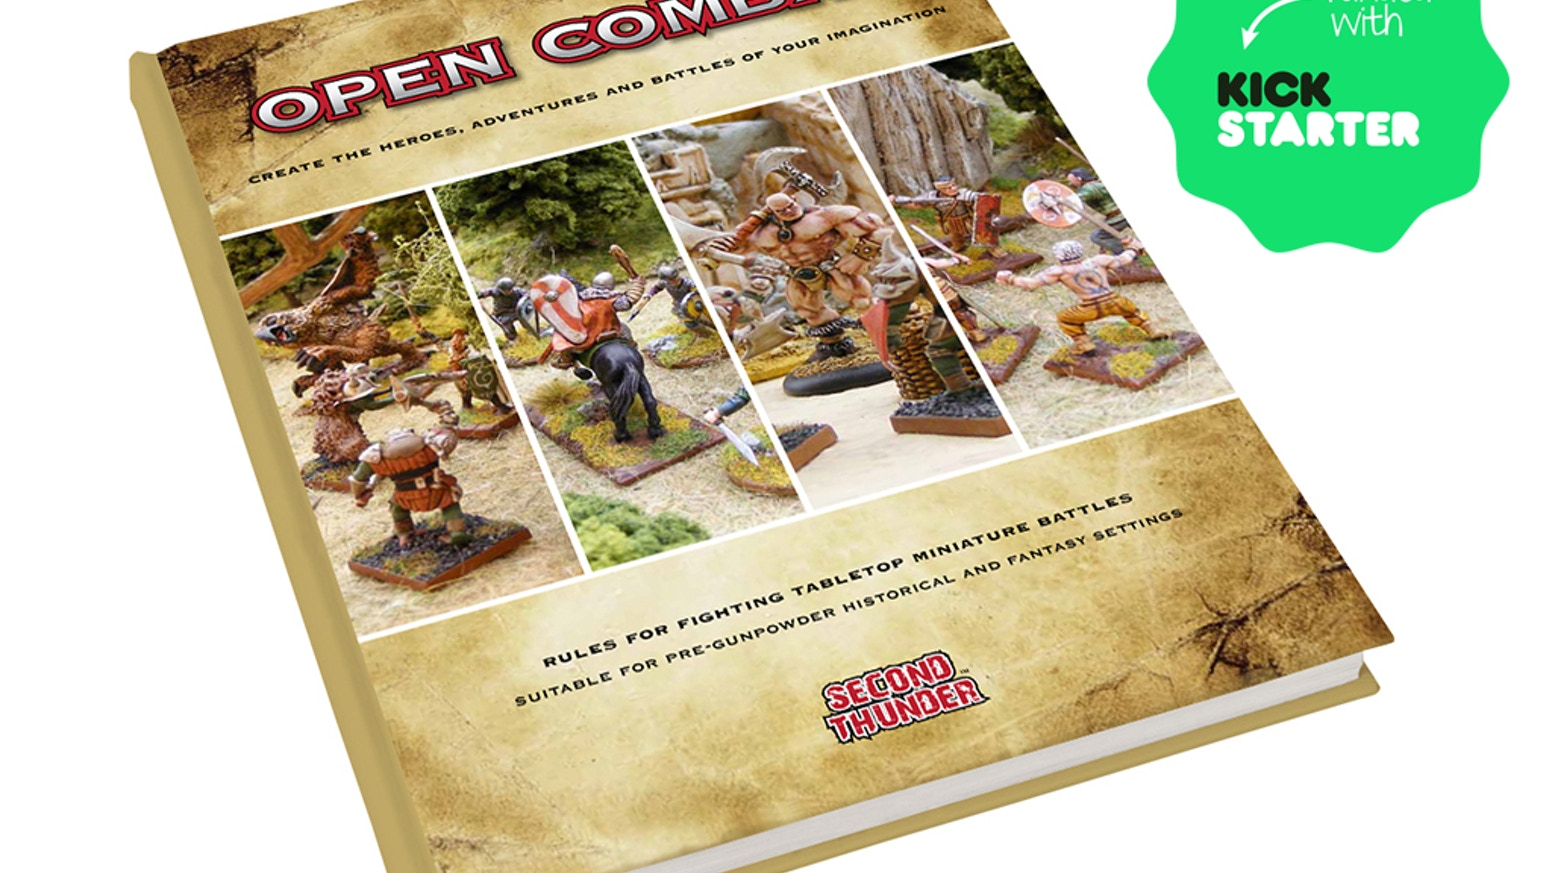 Open Combat - create the heroes, adventures and battles of your imagination.